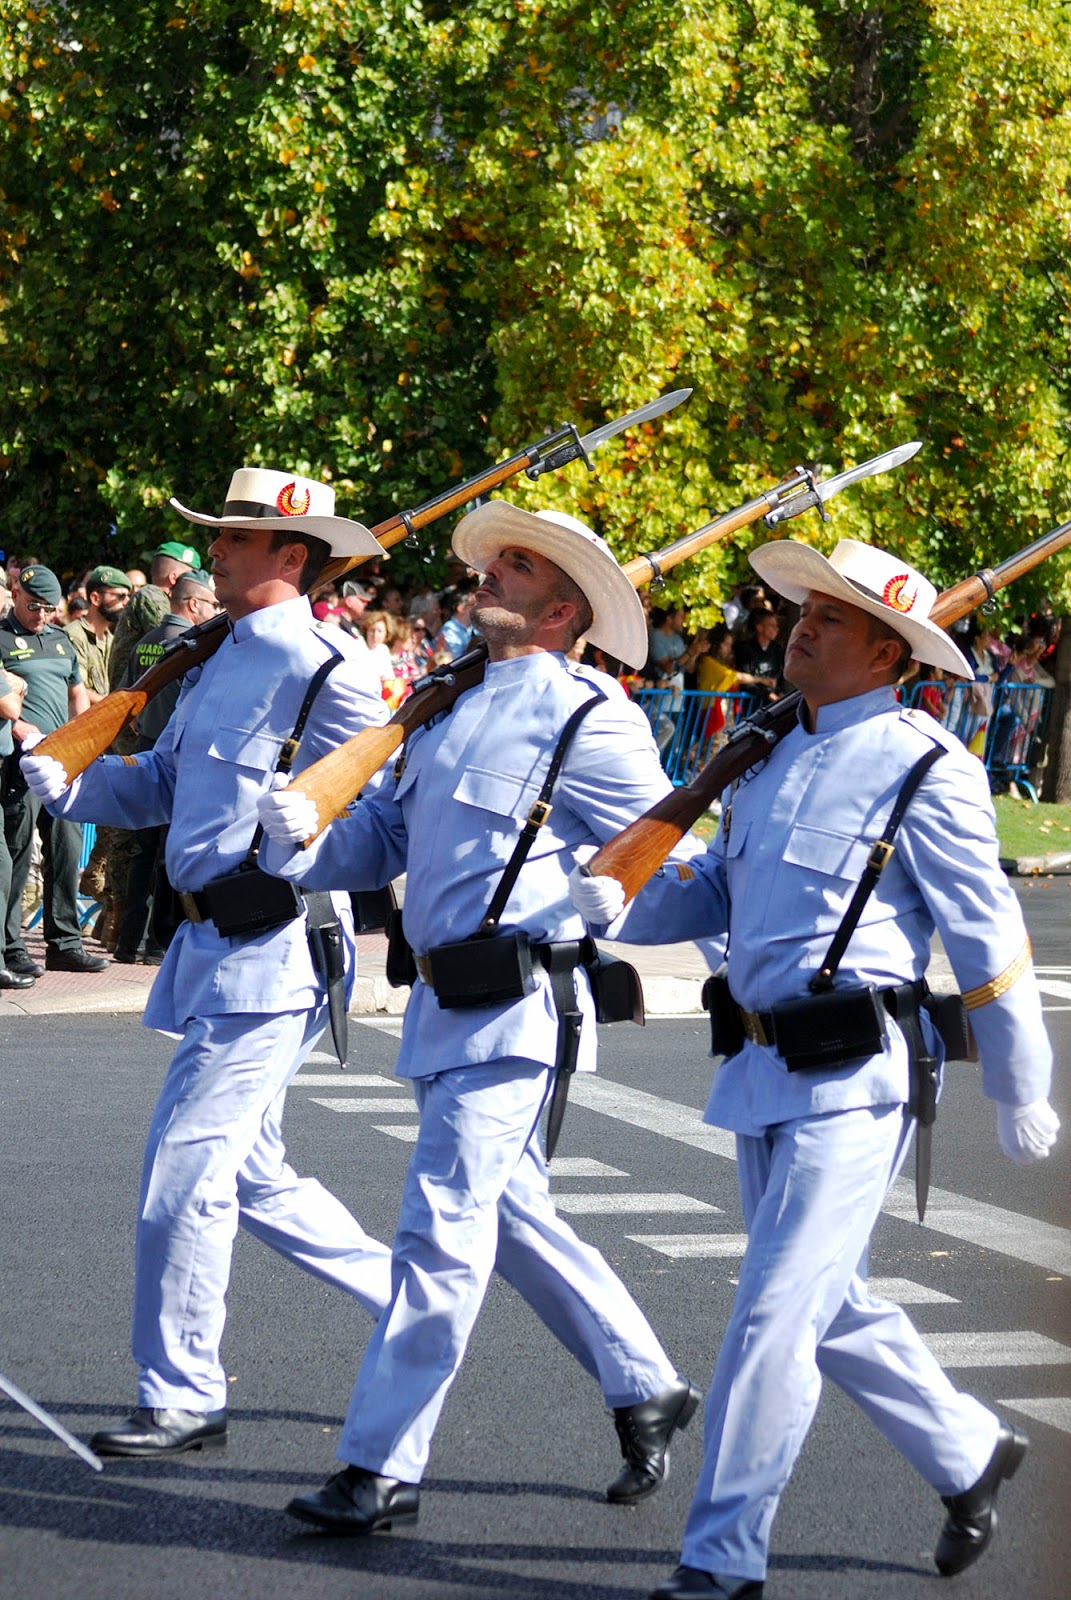 military parade madrid spain national hispanic columbus day